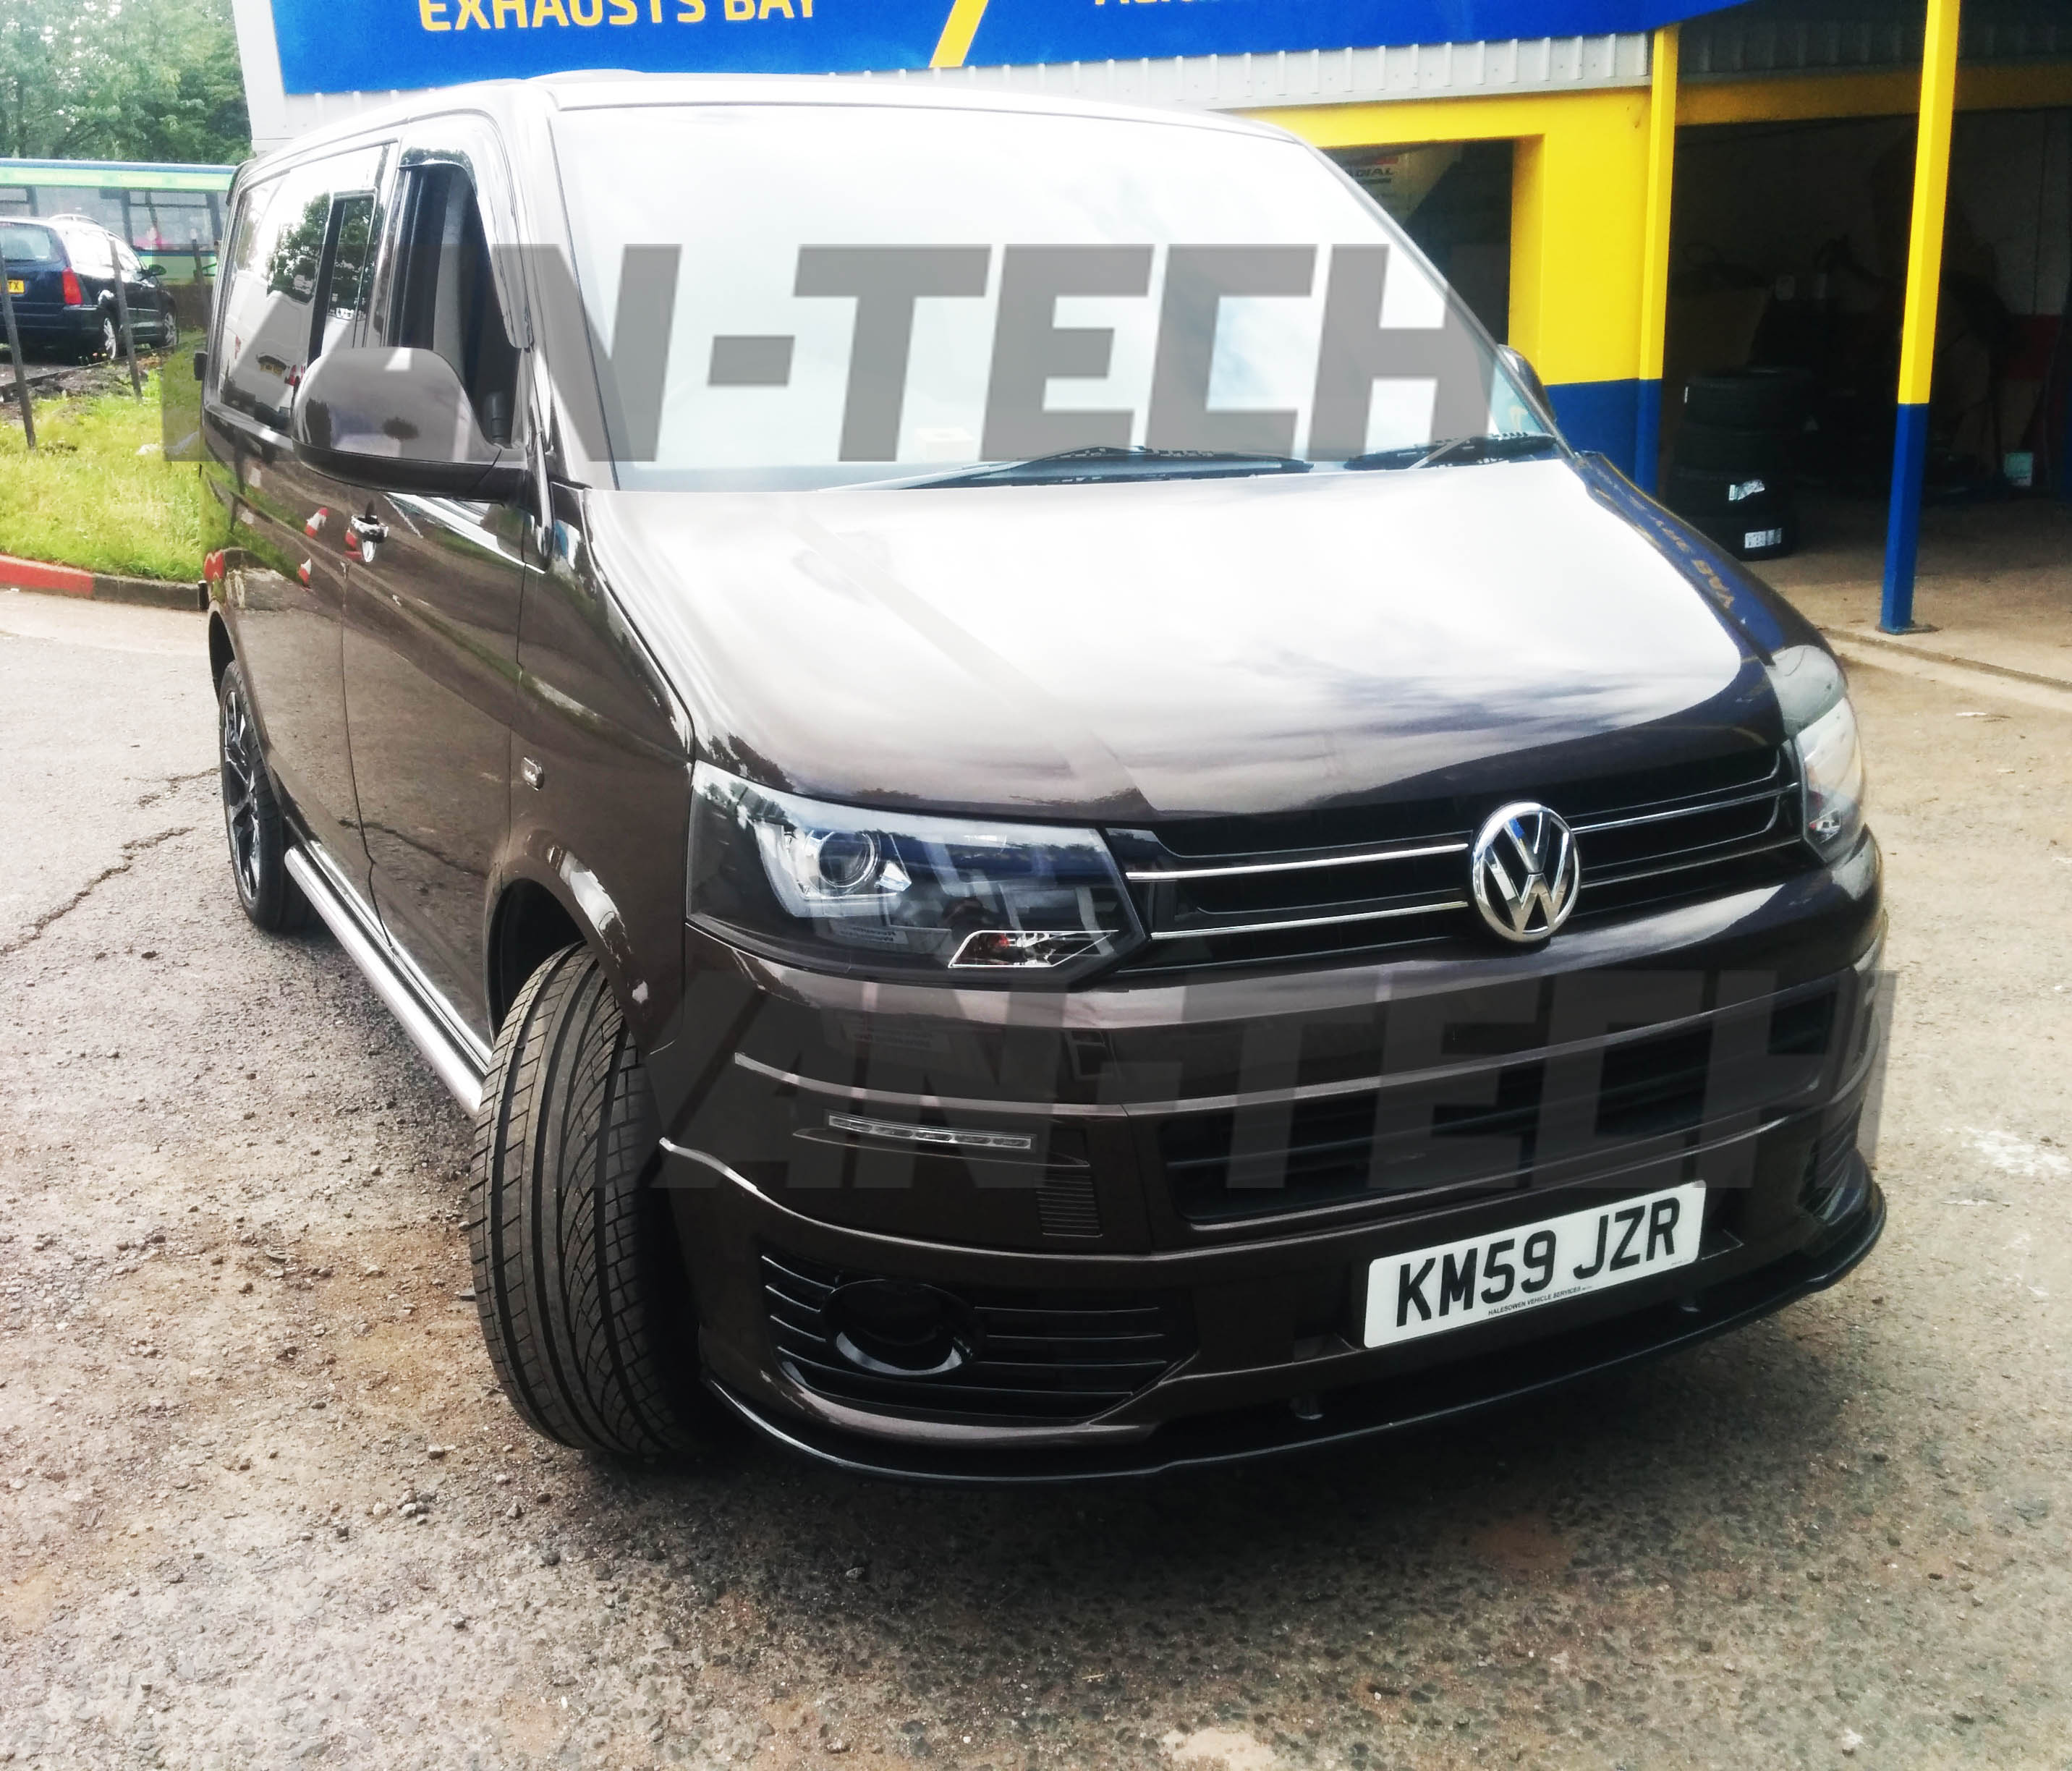 sold volkswagen transporter t5 1 barn door 2009 1 9tdi chocolate brown swb van tech. Black Bedroom Furniture Sets. Home Design Ideas